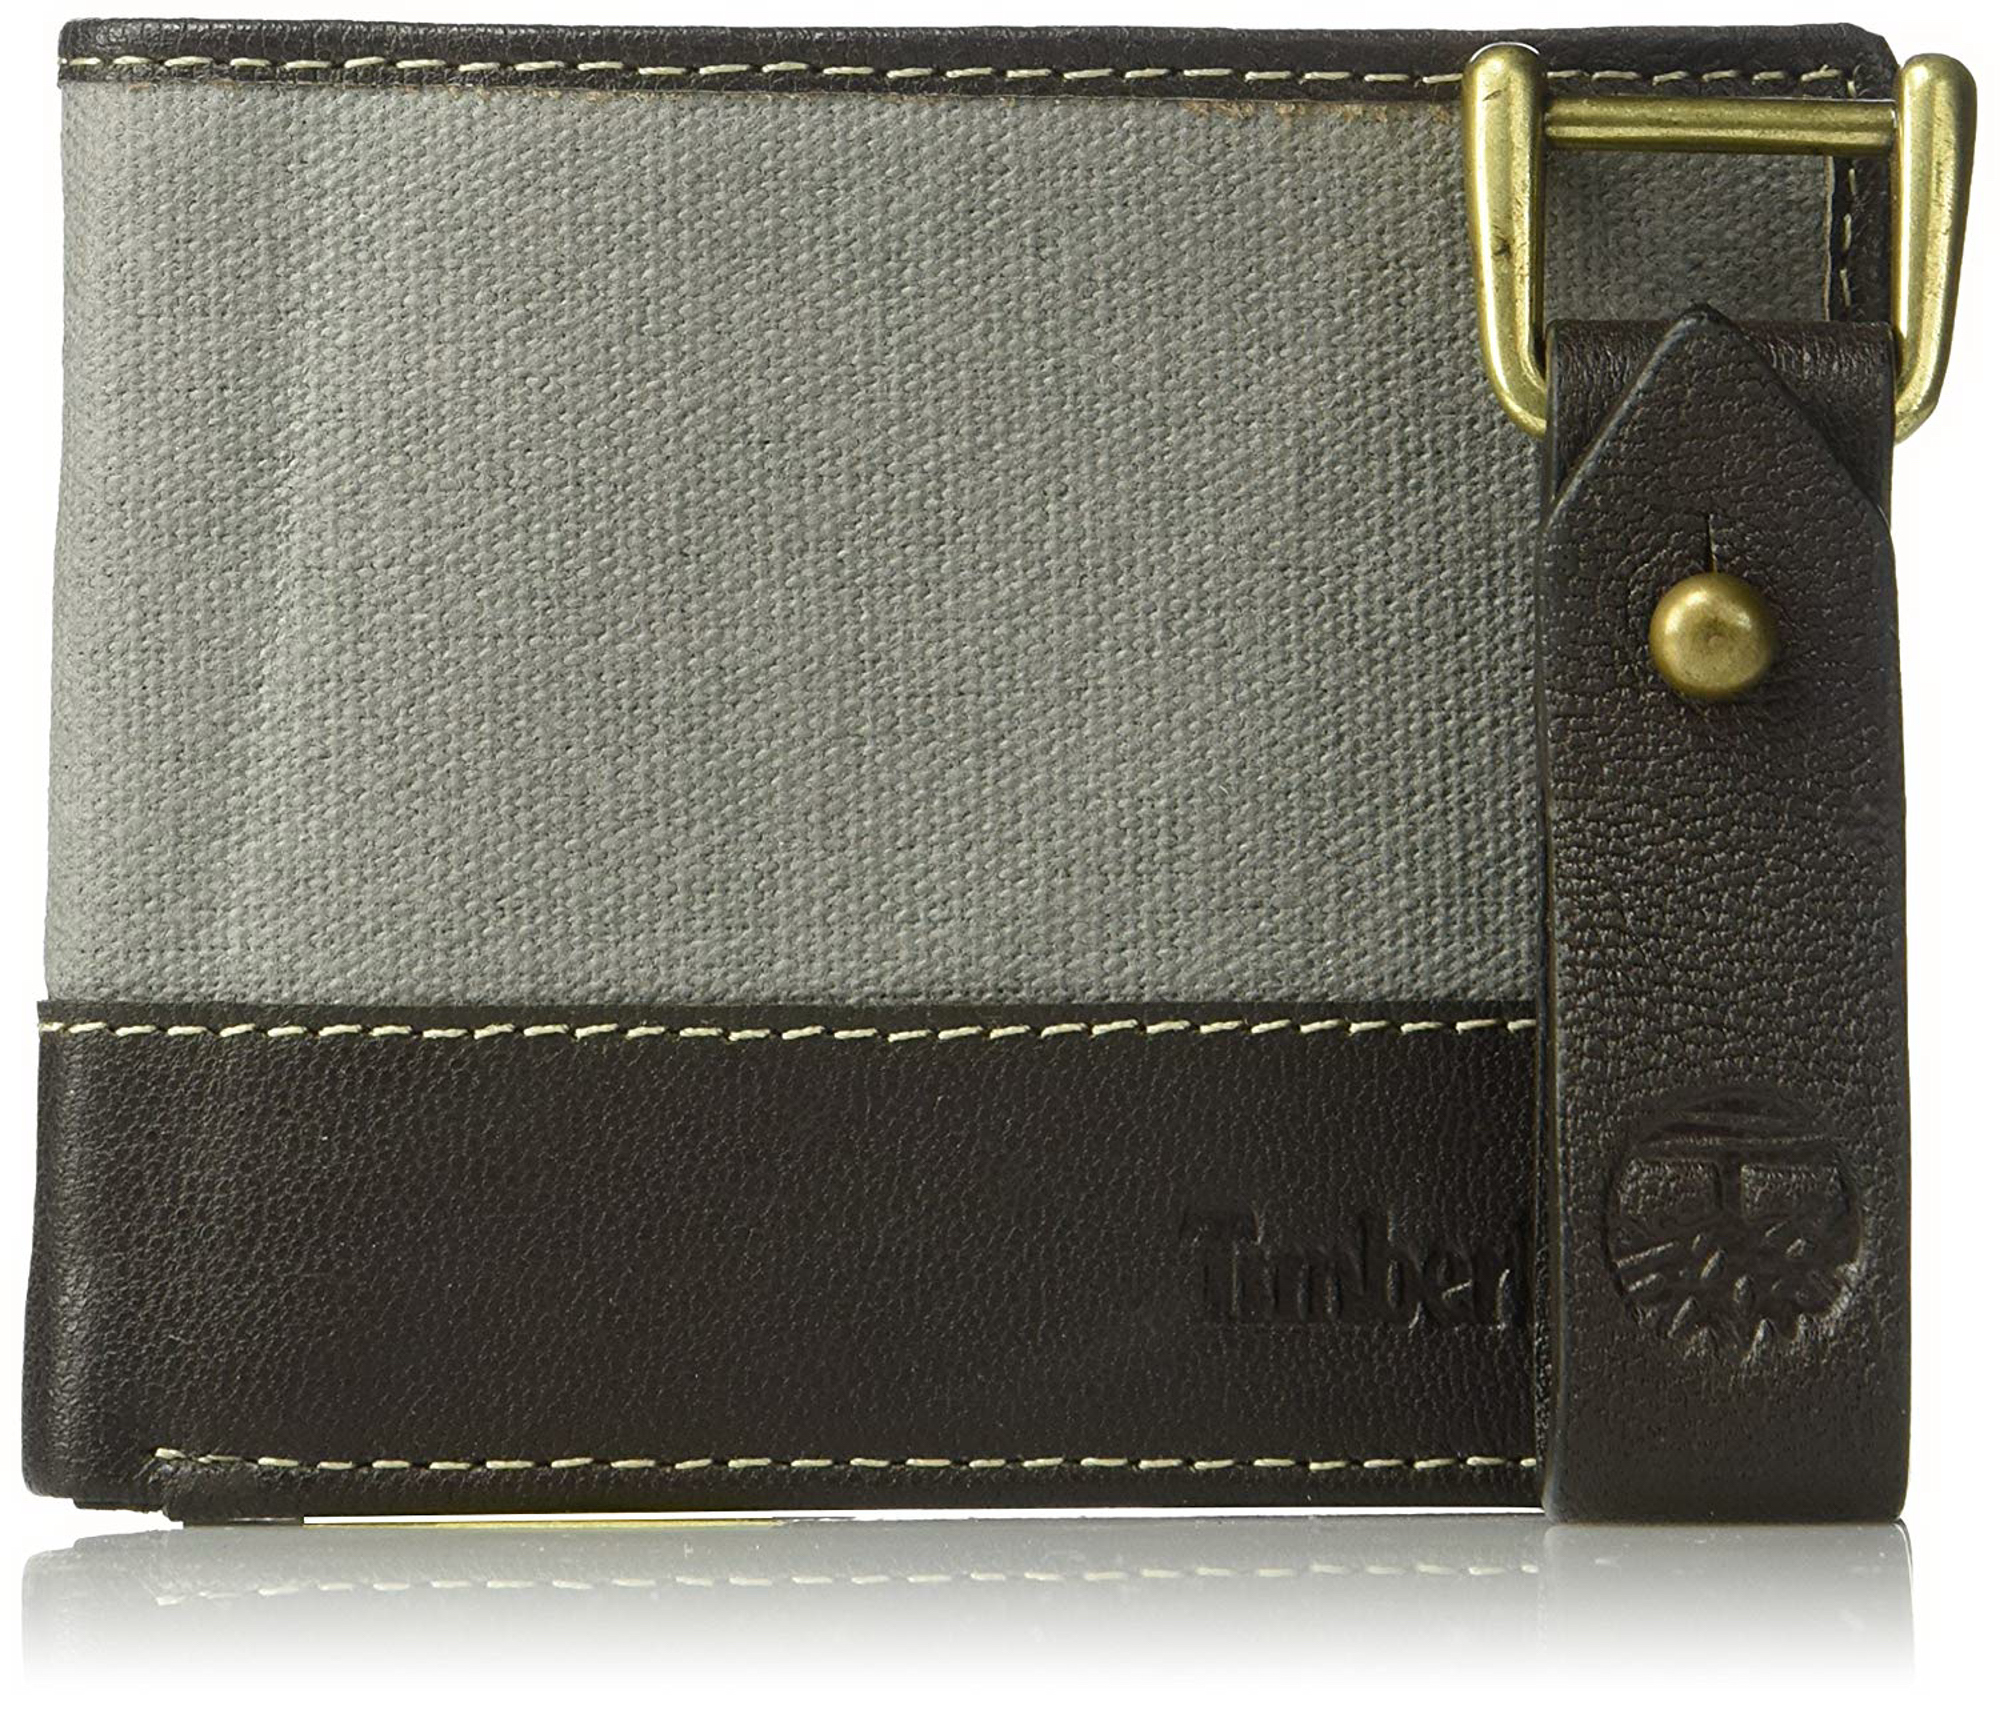 e43101db63b6 Timberland Mens Canvas and Leather Bifold Wallet with Leather Key Fob Gift  Set